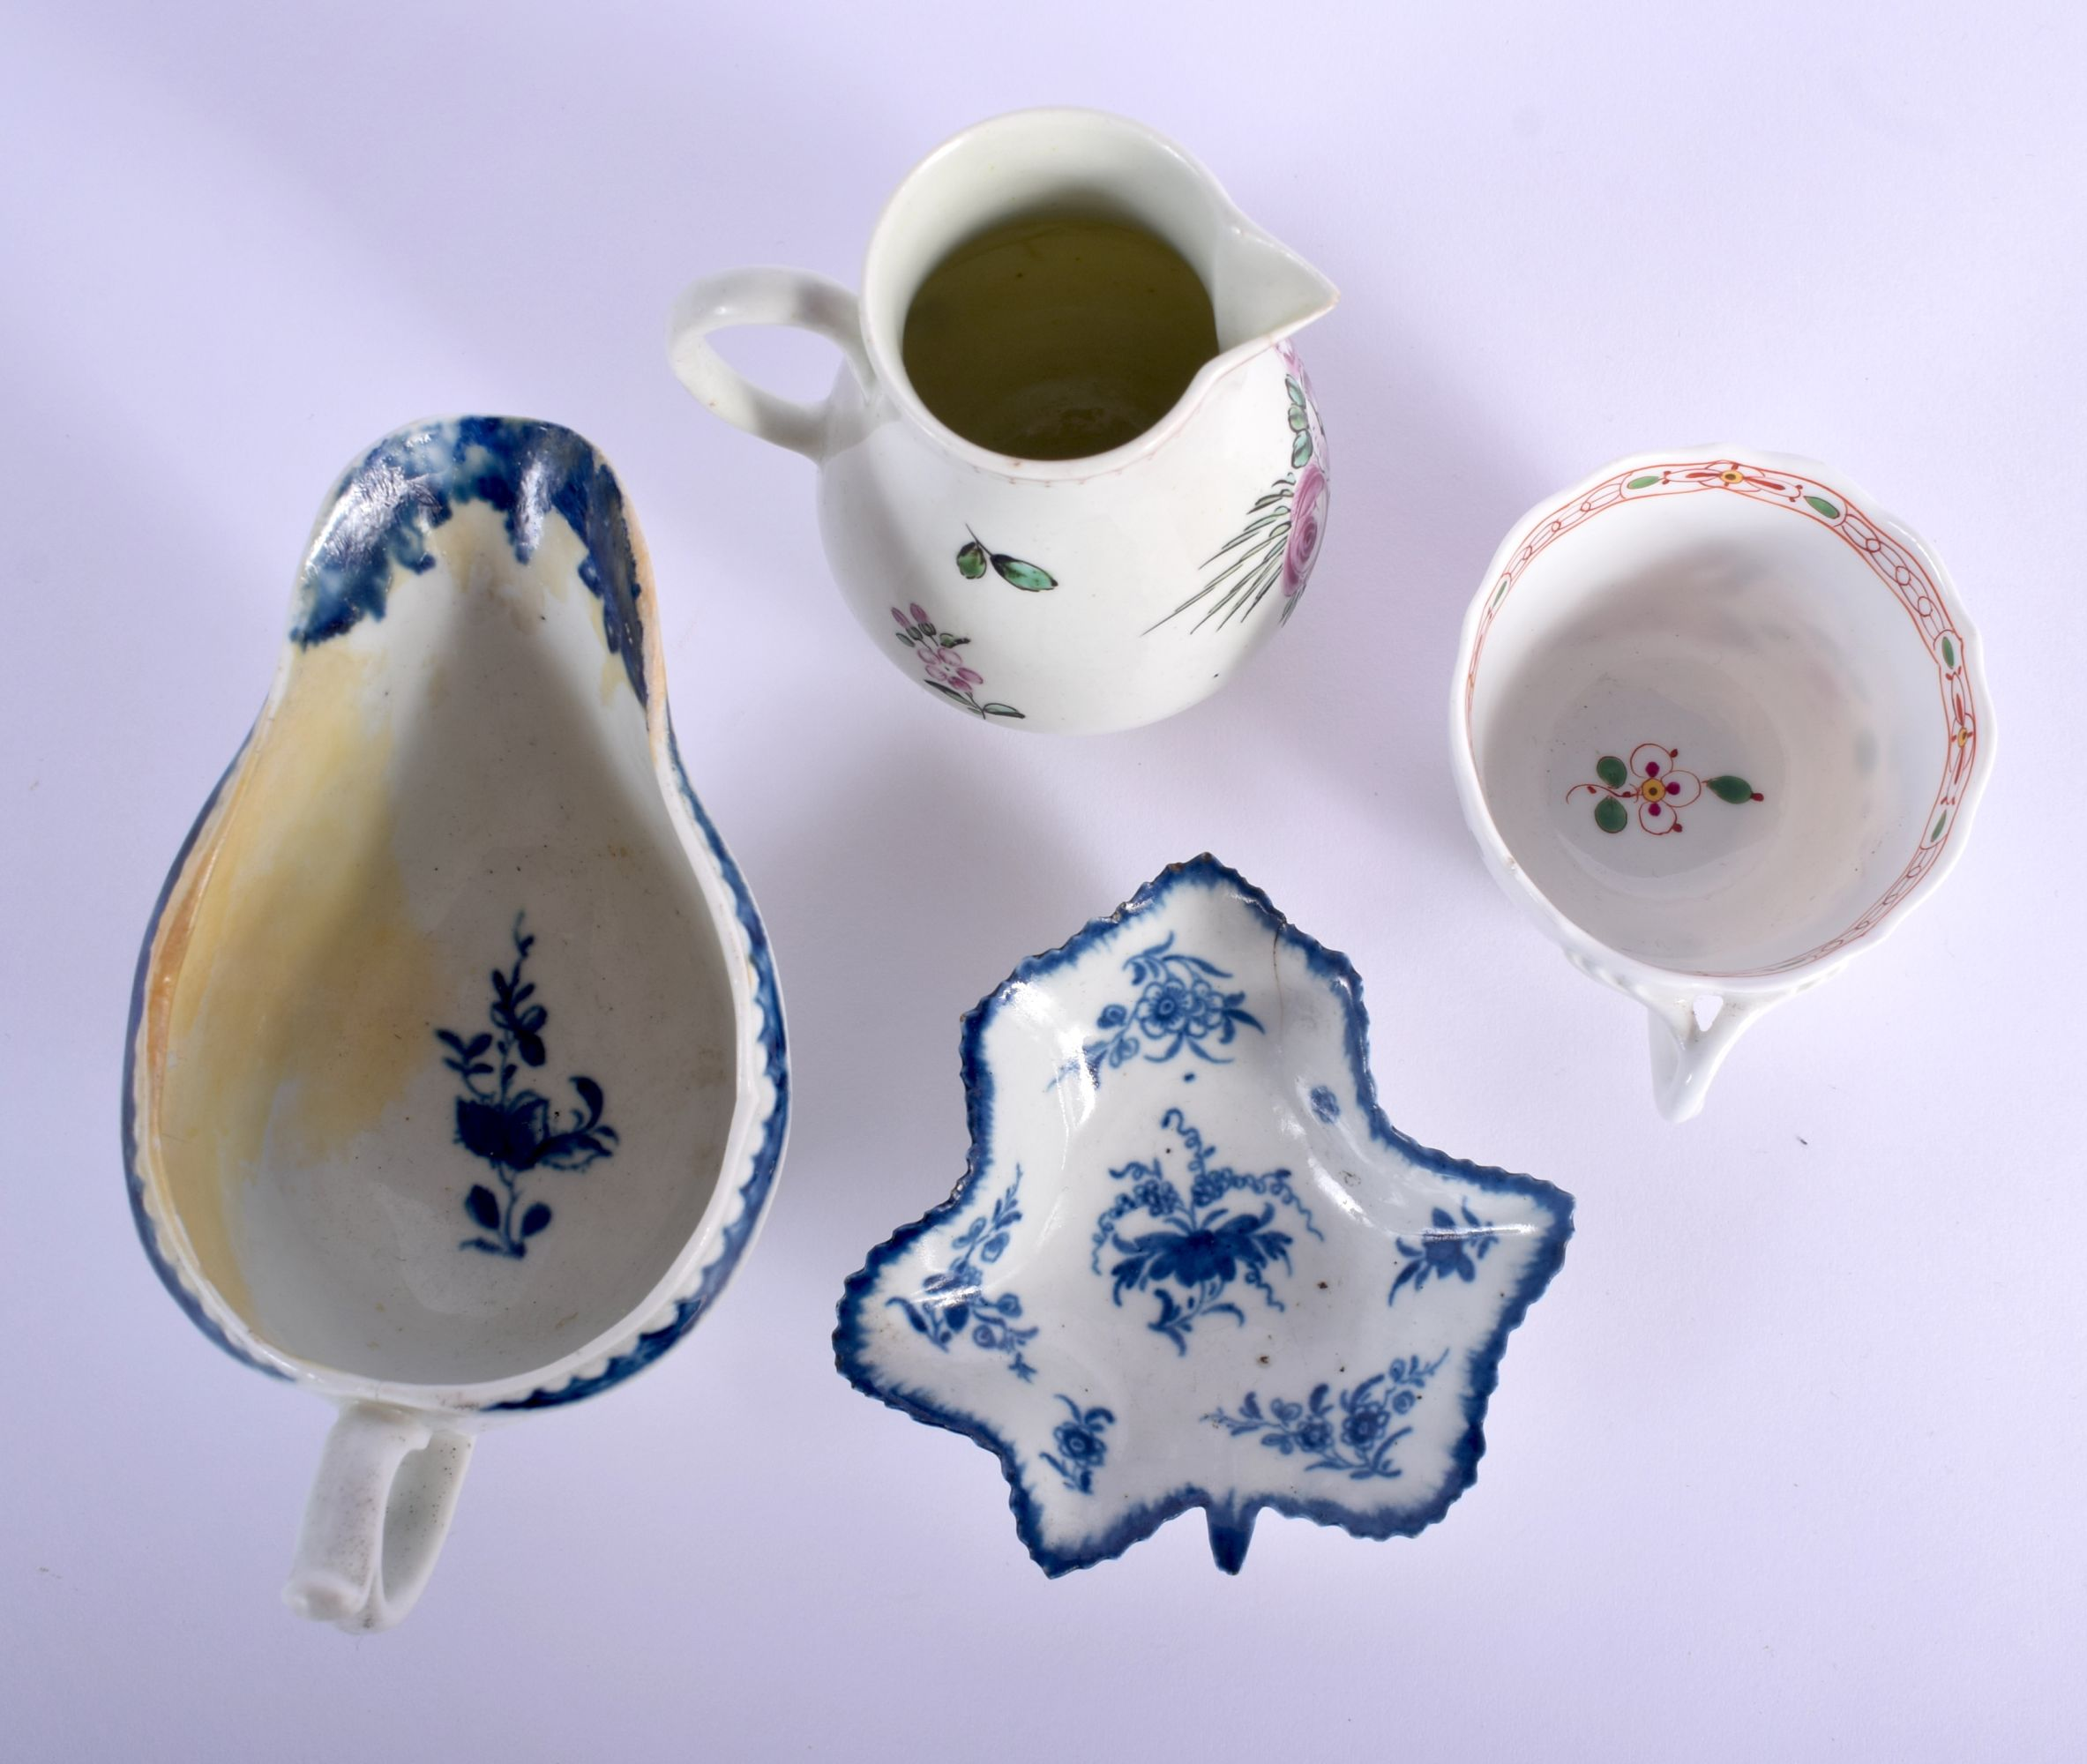 AN 18TH CENTURY WORCESTER SPARROW BEAK JUG together a Worcester cream boat etc. Largest 13 cm wide. - Image 3 of 4